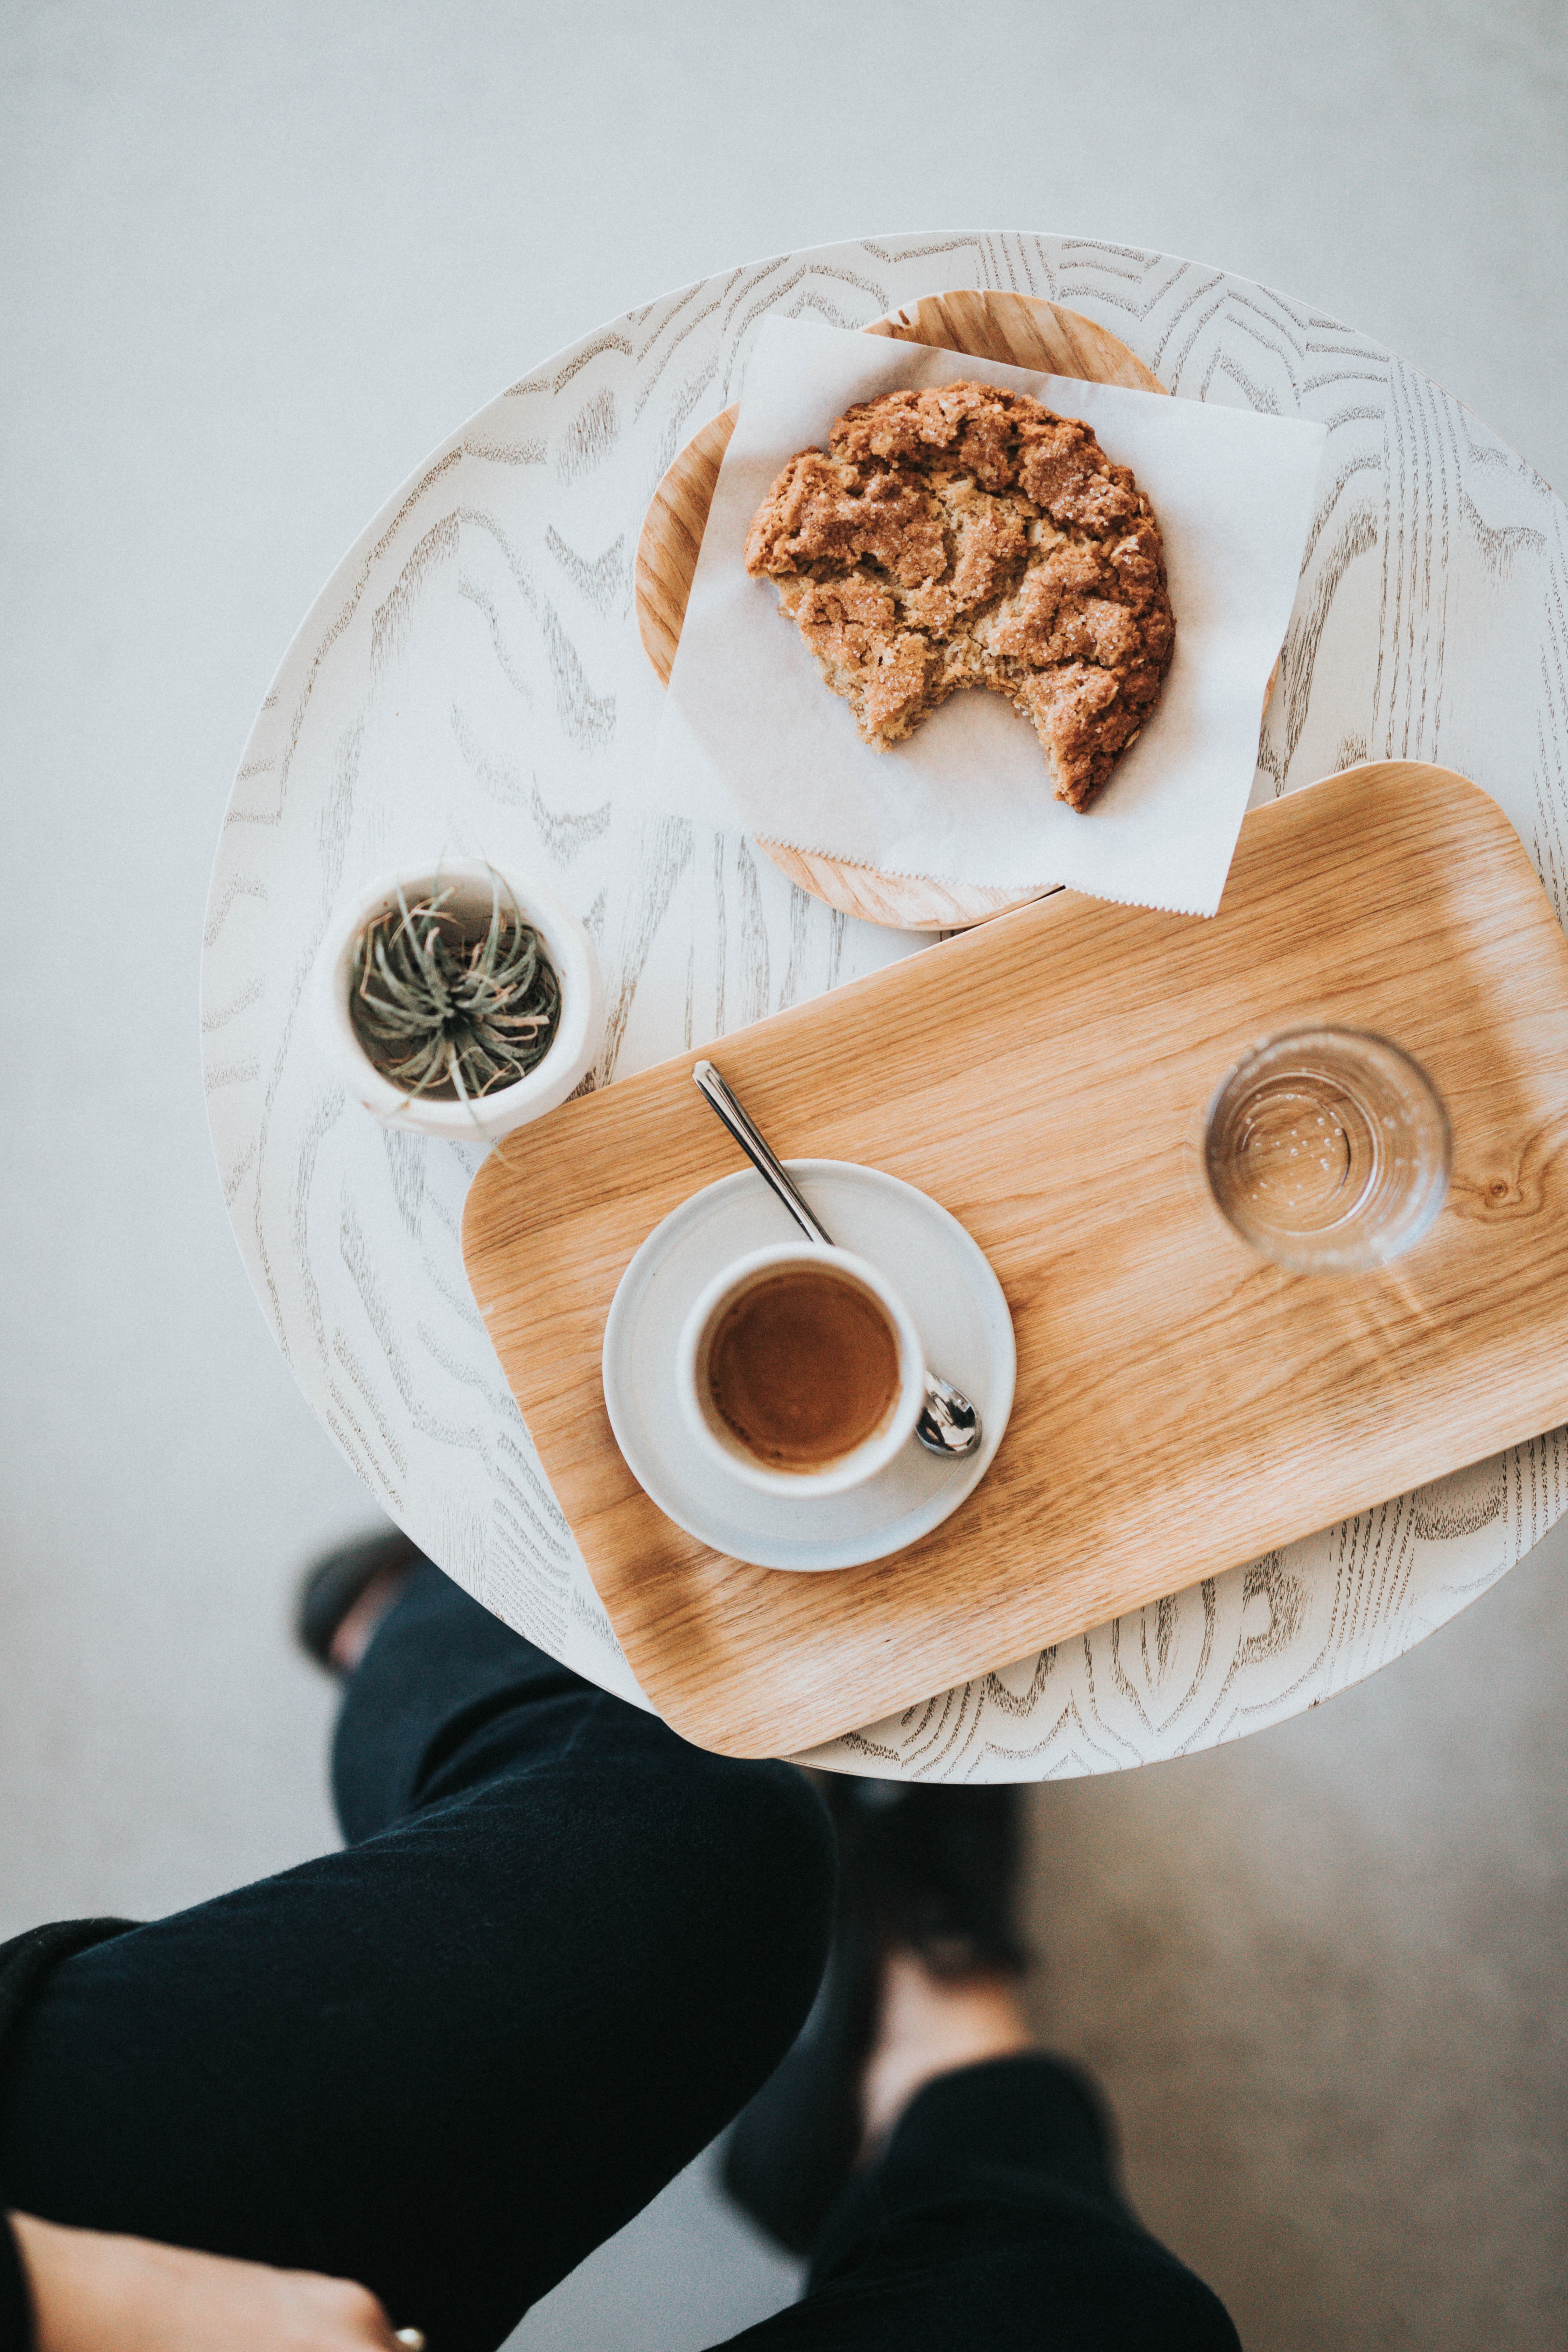 flat-lay photography of pastry and liquid-filled cup on tray